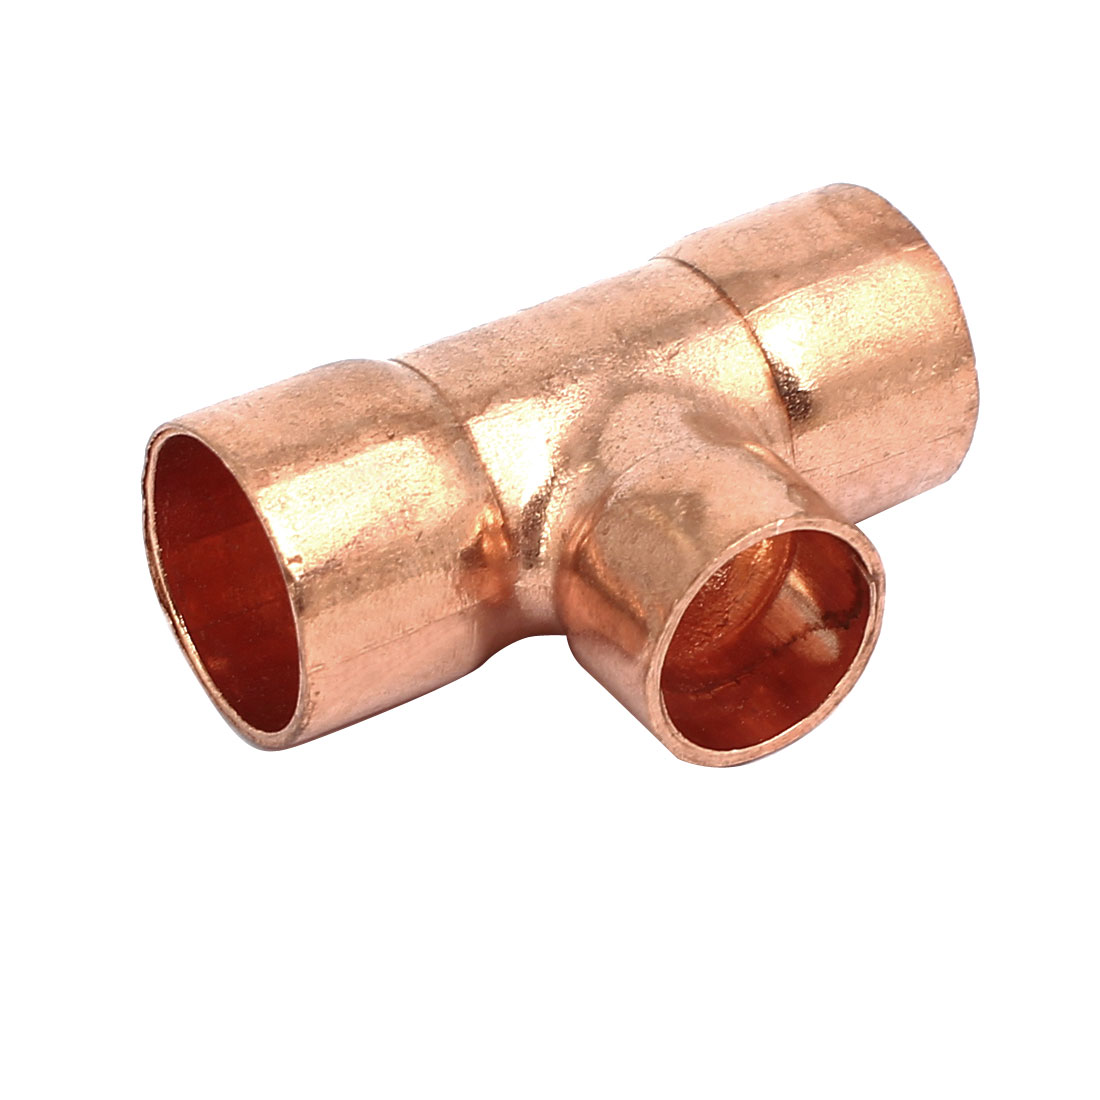 16mmx12.7mm Copper Tee Joint Seperation Tube Connector for Air Conditioner